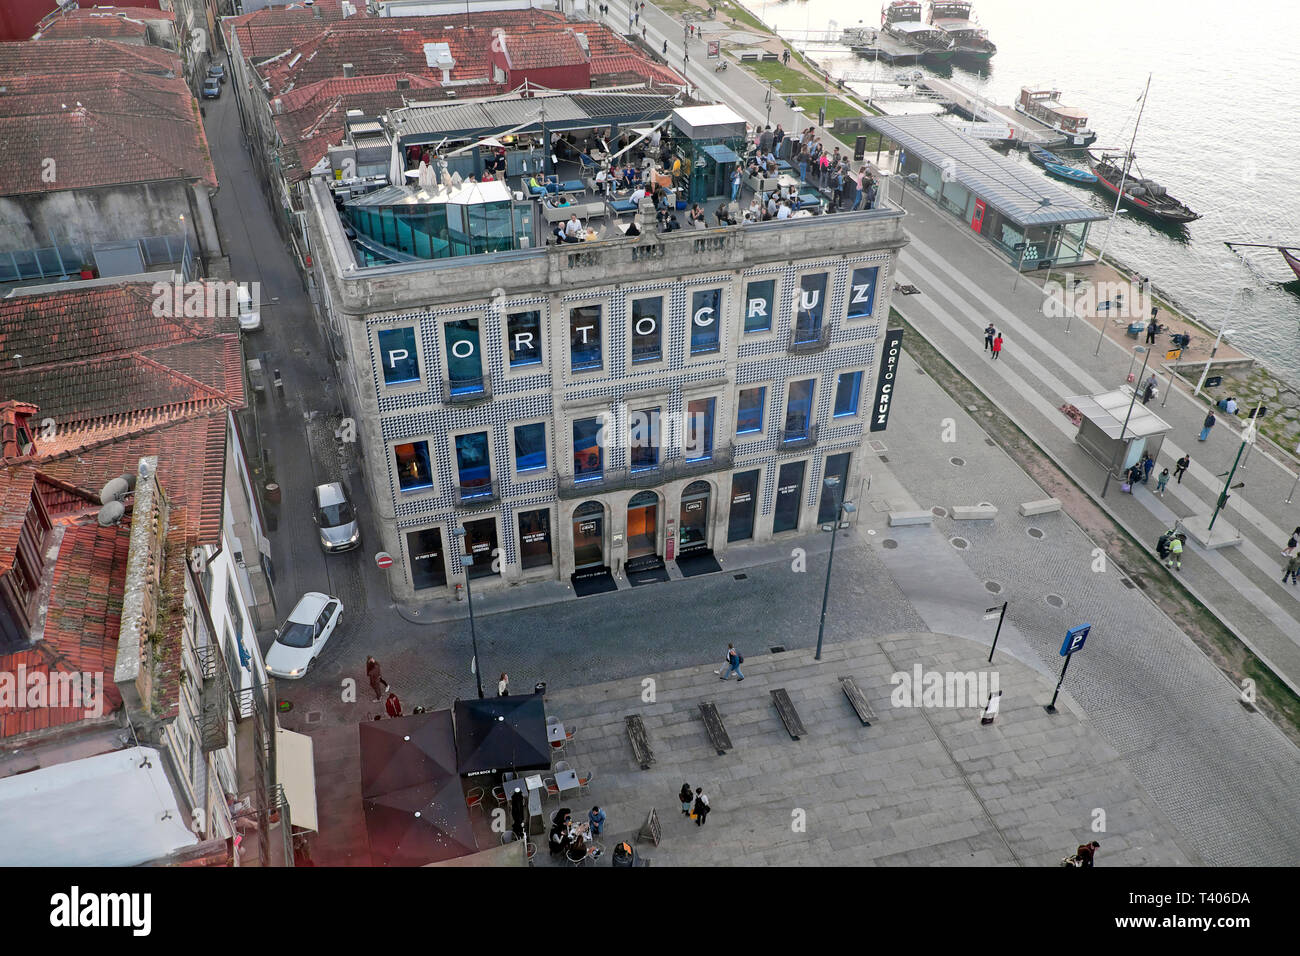 Aerial view of people on the Espaco Porto Cruz rooftop restaurant terrace Vila Nova de Gaia from the cable car in Porto Portugal Europe  KATHY DEWITT Stock Photo